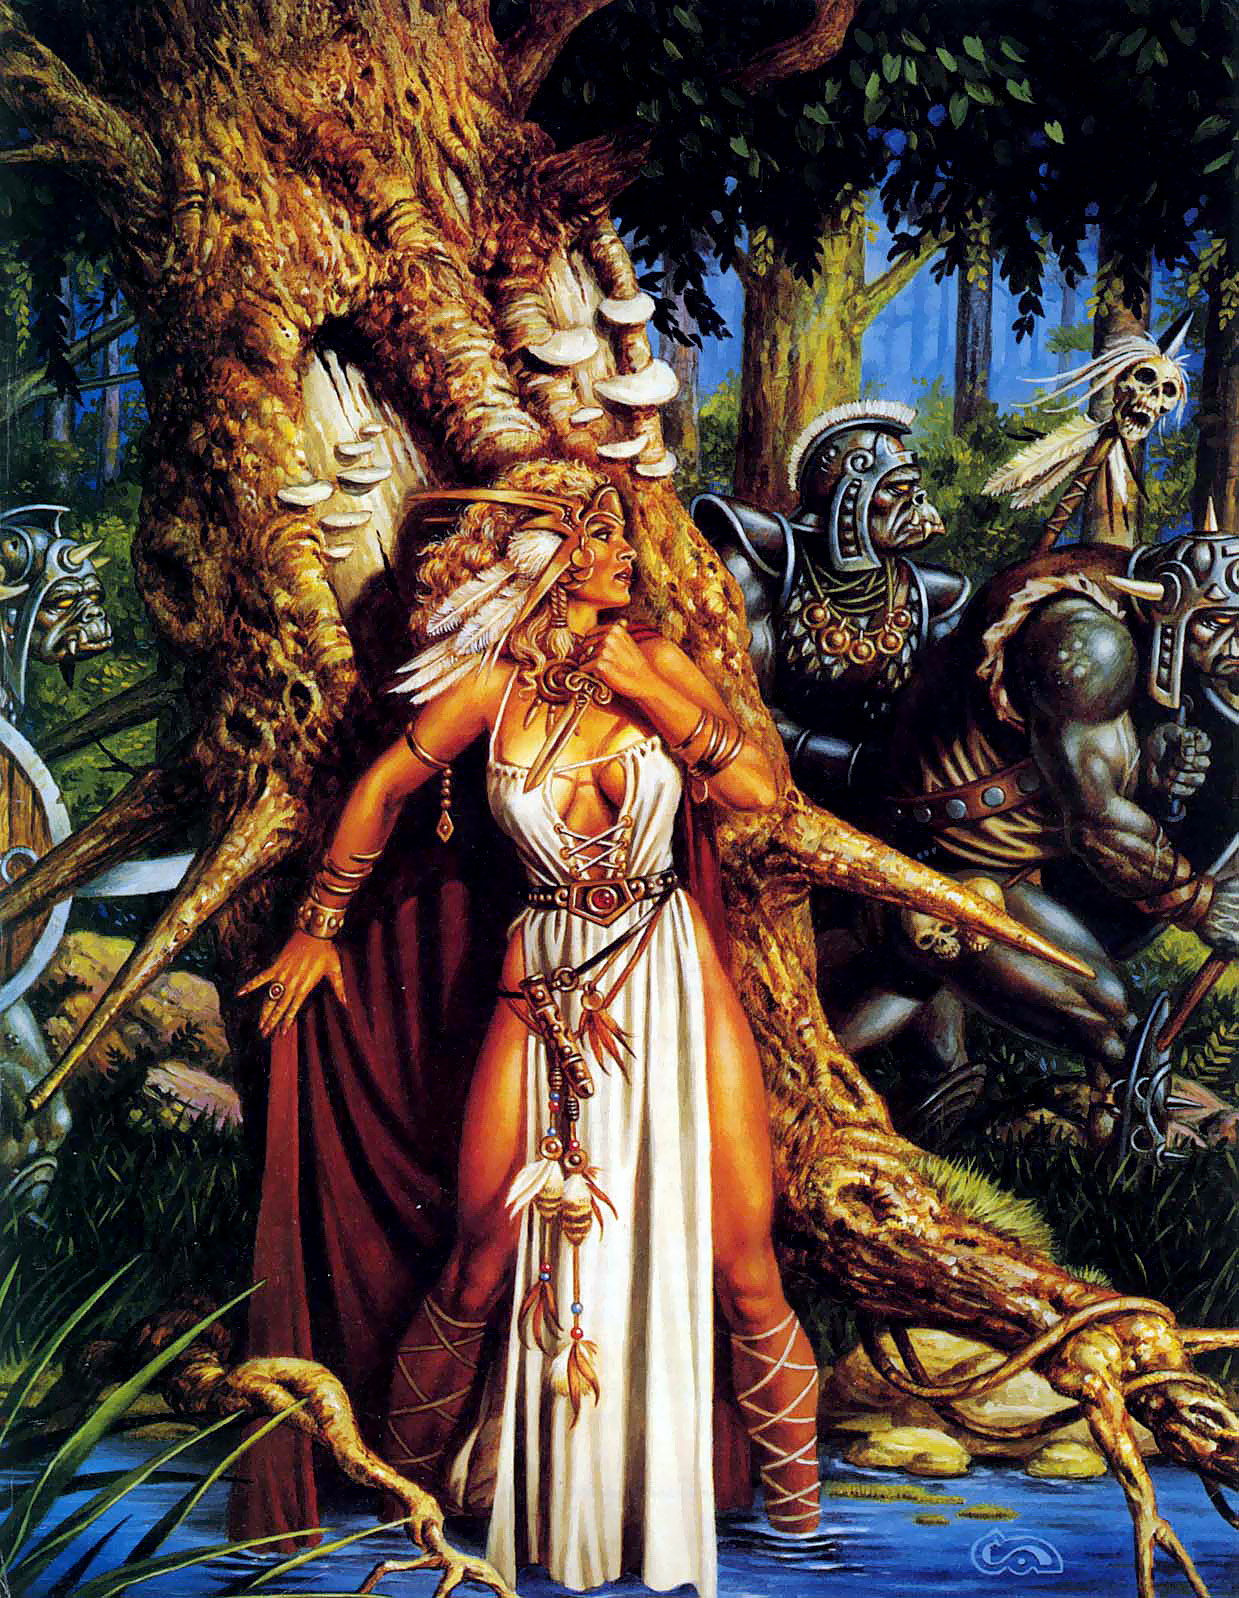 orcs Orchi e principessa in pericolo - by Clyde Caldwell TSR - The Complete Book of Humanoids (1993) © Wizards of the Coast & Hasbro